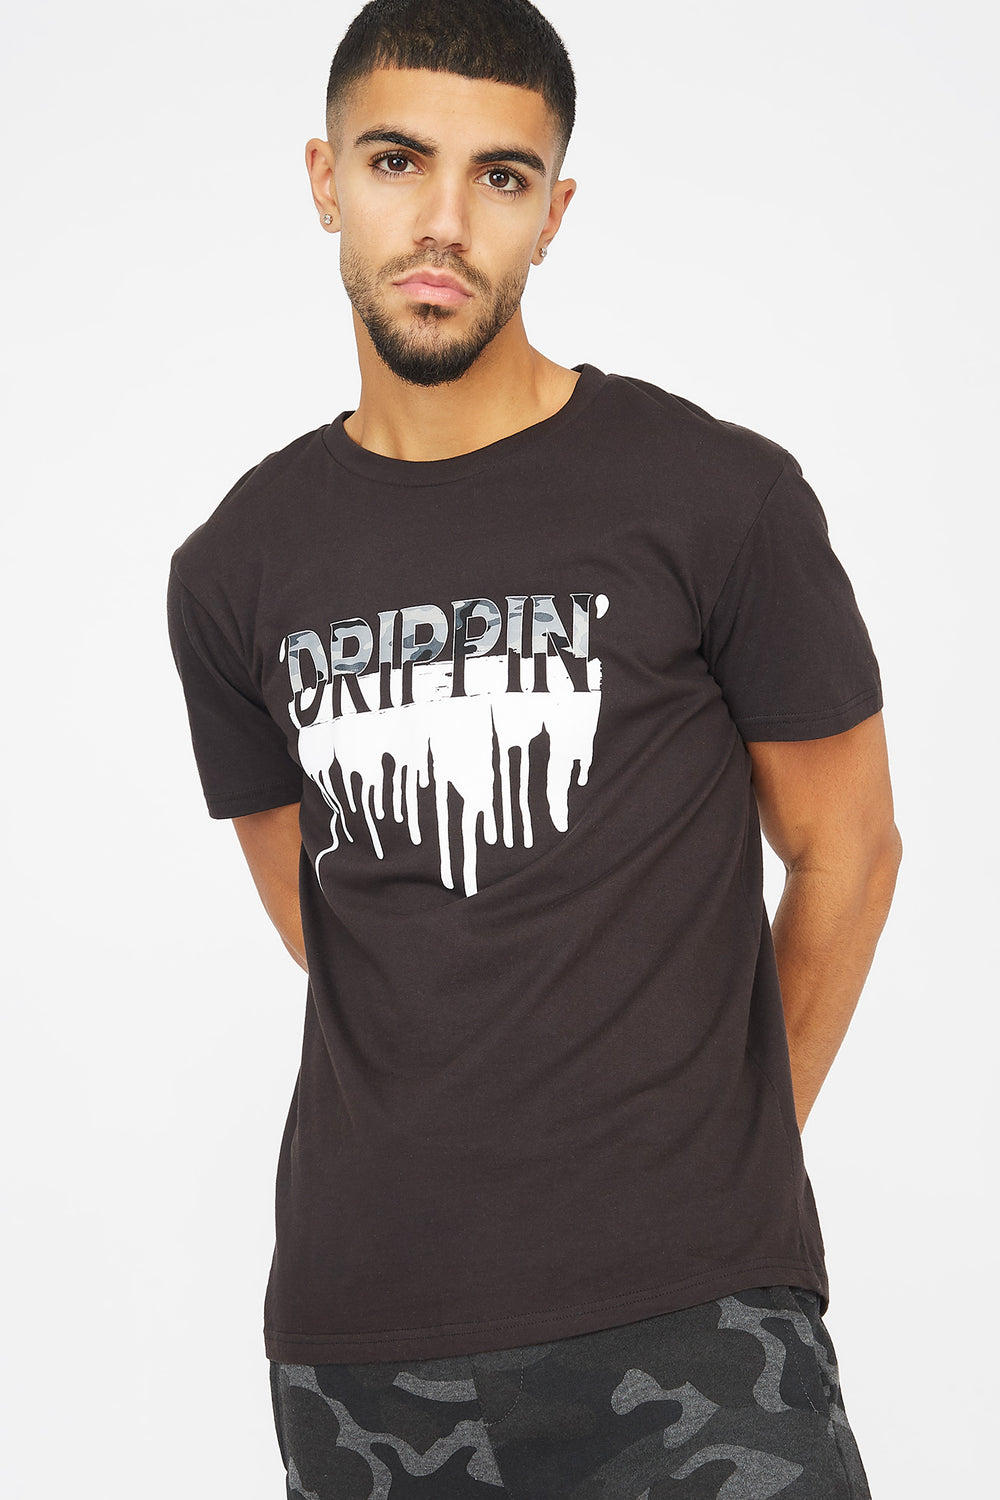 Drippin' Graphic T-Shirt Black